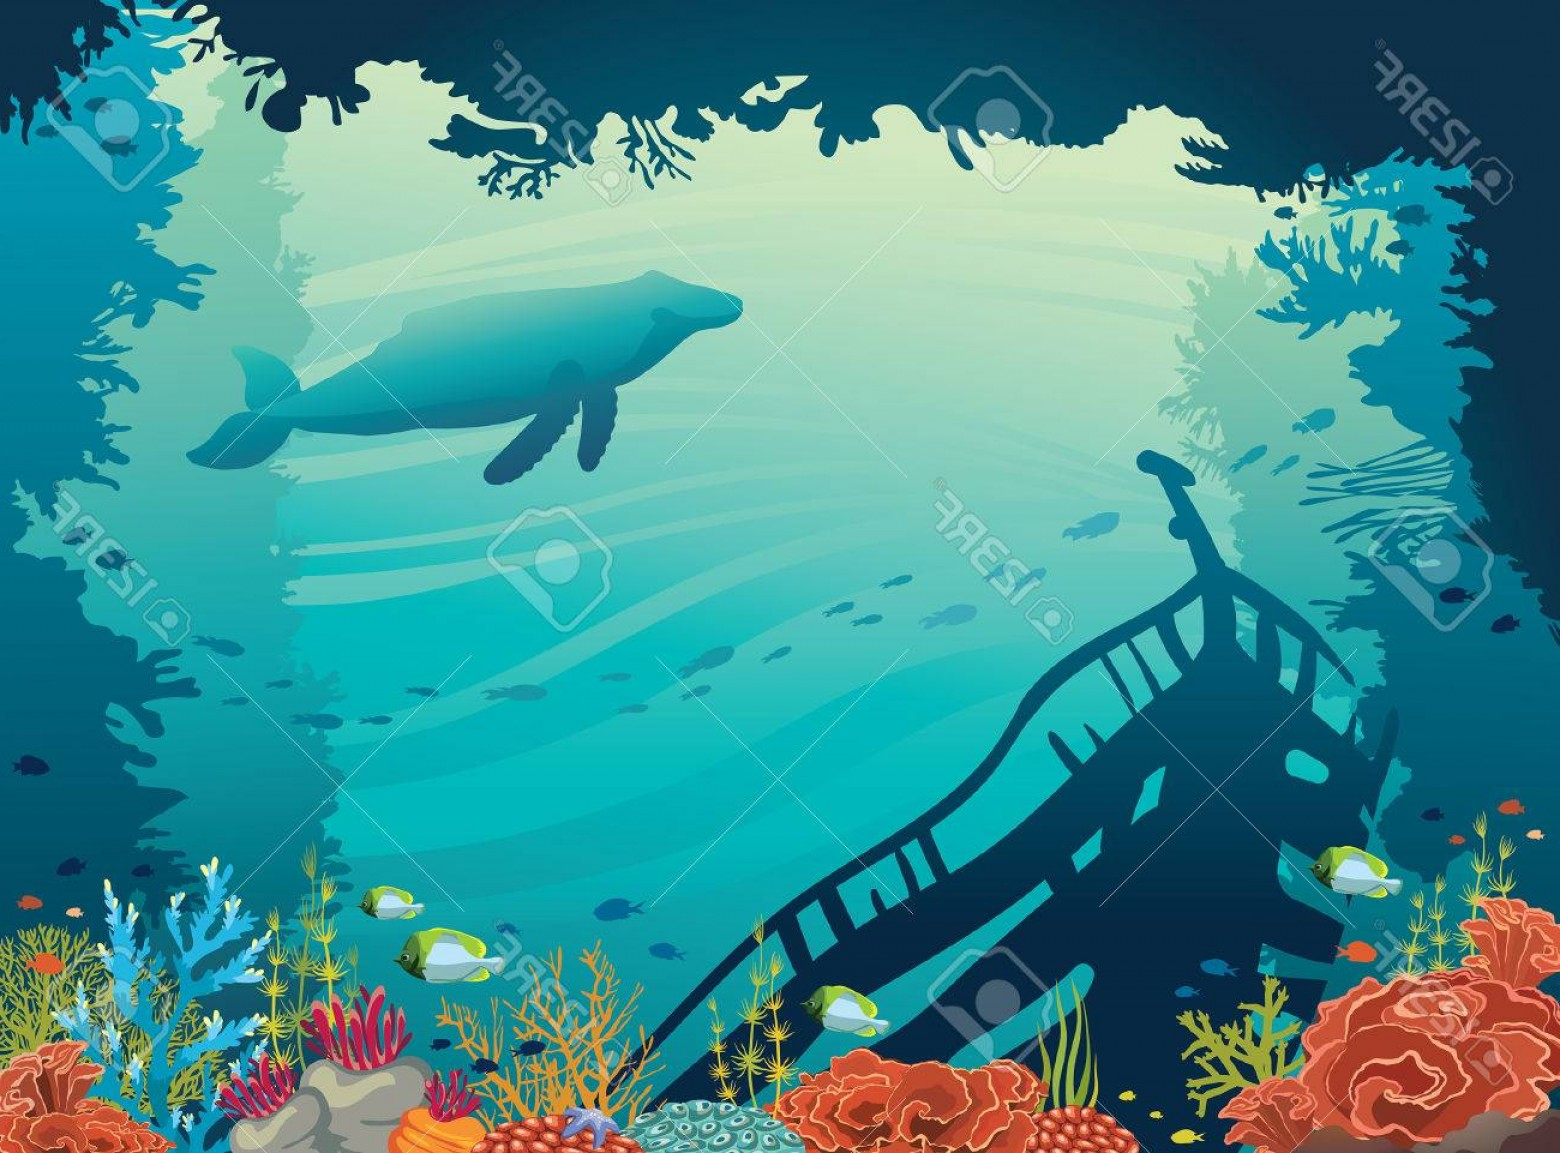 Underwater Sea Vector Art: Photostock Vector Underwater Vector Illustration Silhouette Of Sunken Ship Coral Reef Fish And Whale On A Blue Sea Mar